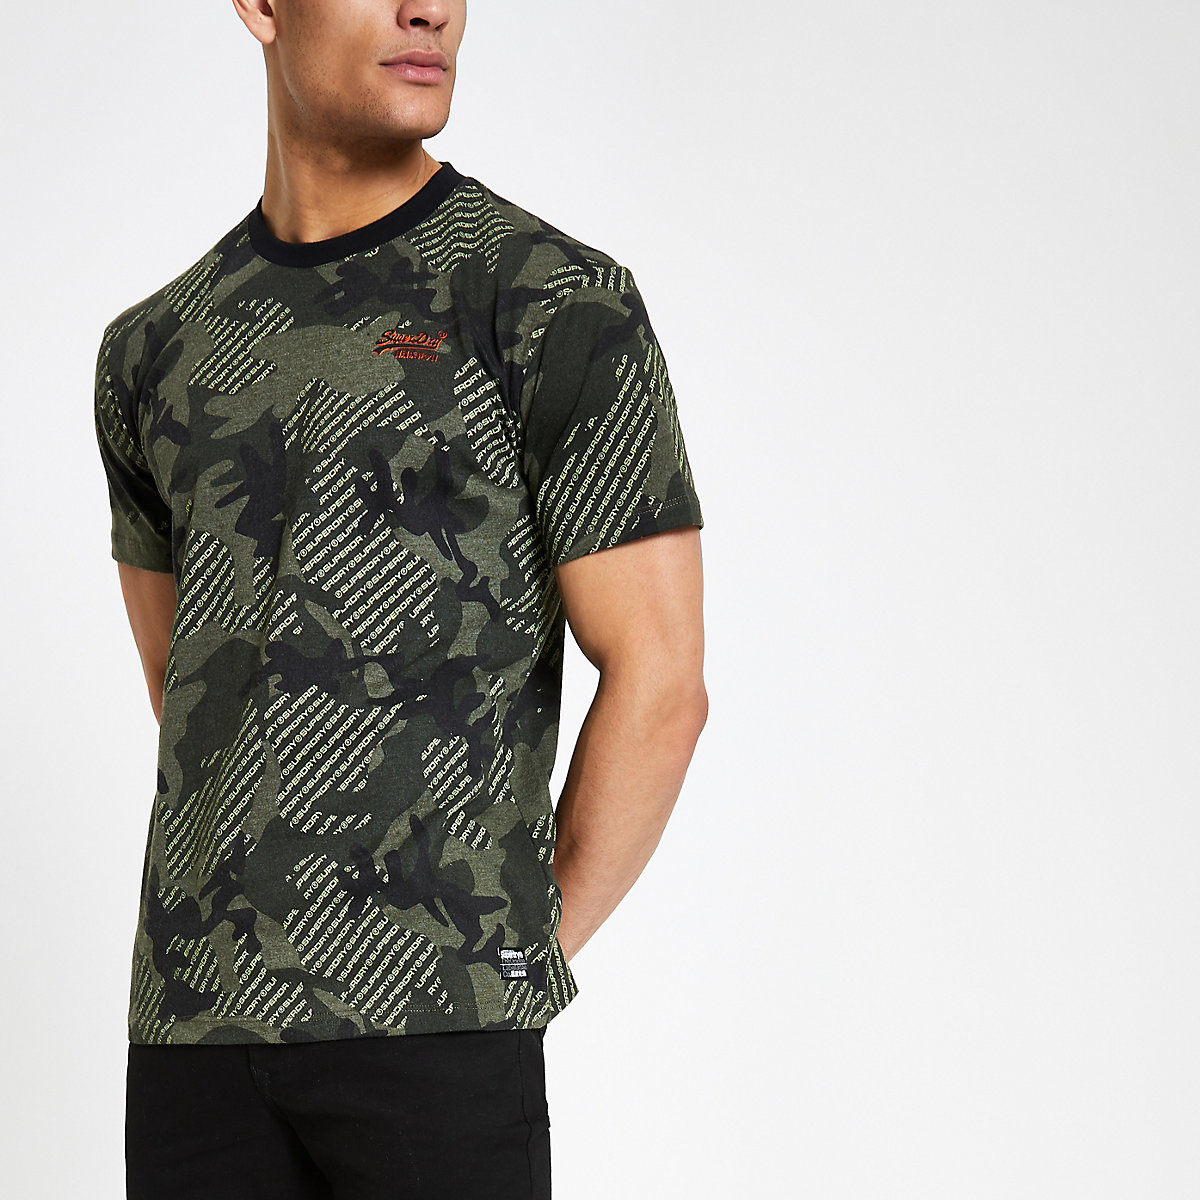 Superdry dark green camo boxy T-shirt